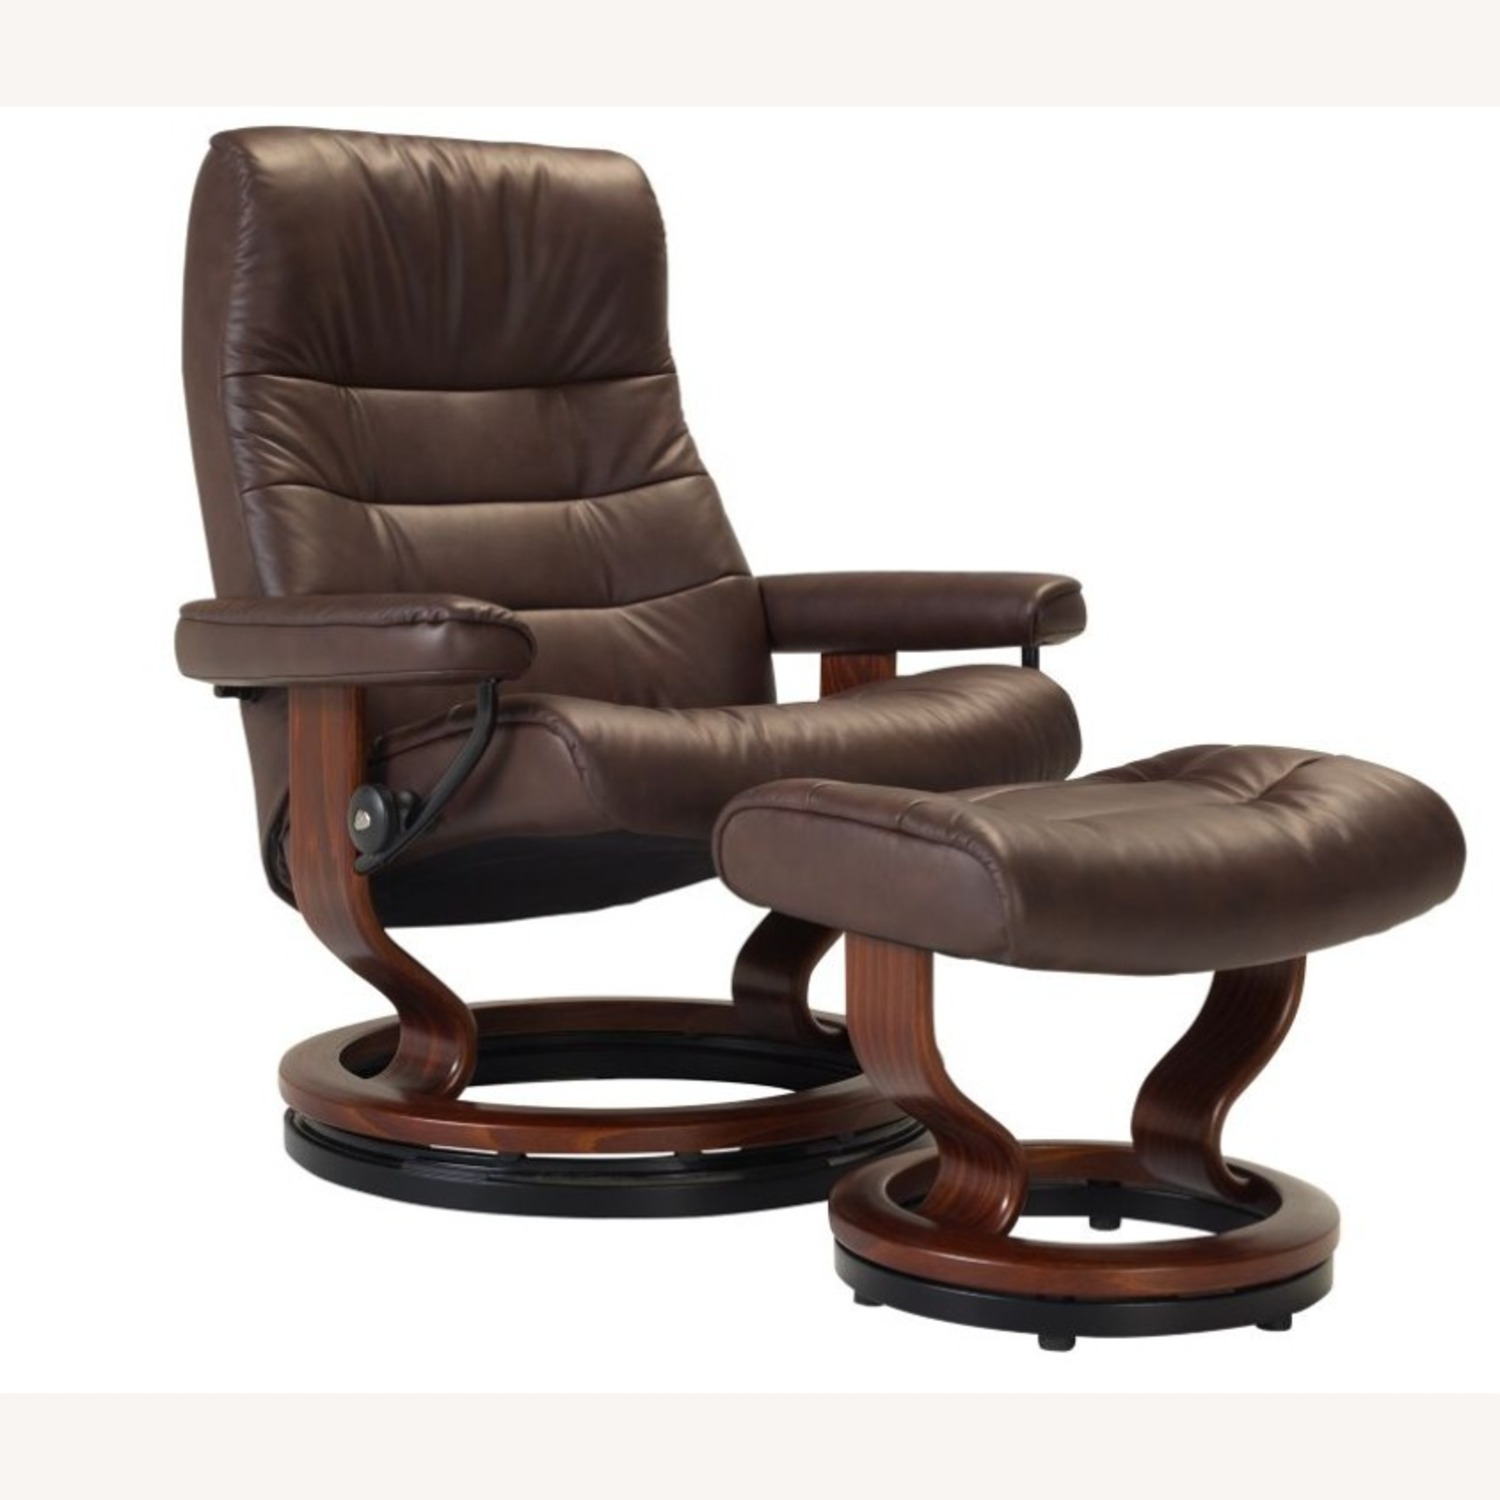 Raymour & Flanigan Leather Reclining Chair and Ottoman - image-2